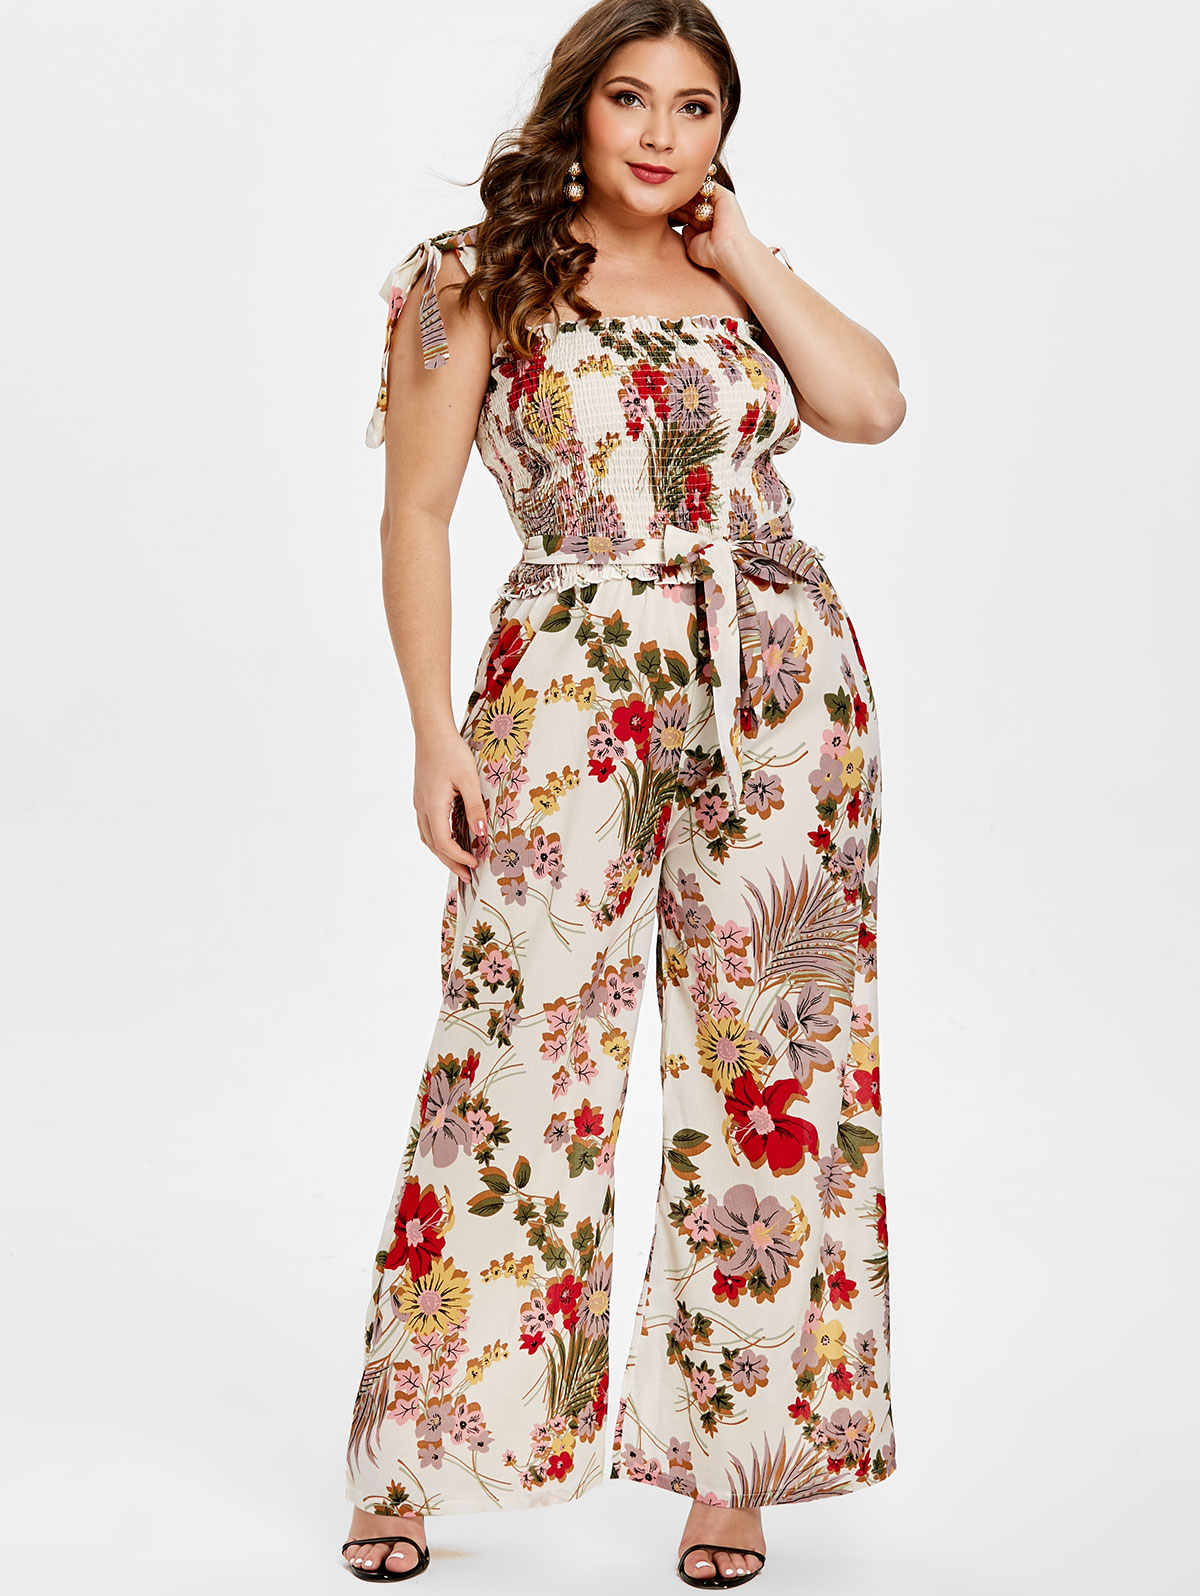 Wipalo Women Summer Plus Size Shirred Floral Print Jumpsuit Sleeveless  Casual Tie Shoulder Bowknot Belted Wide 3c62323669d8